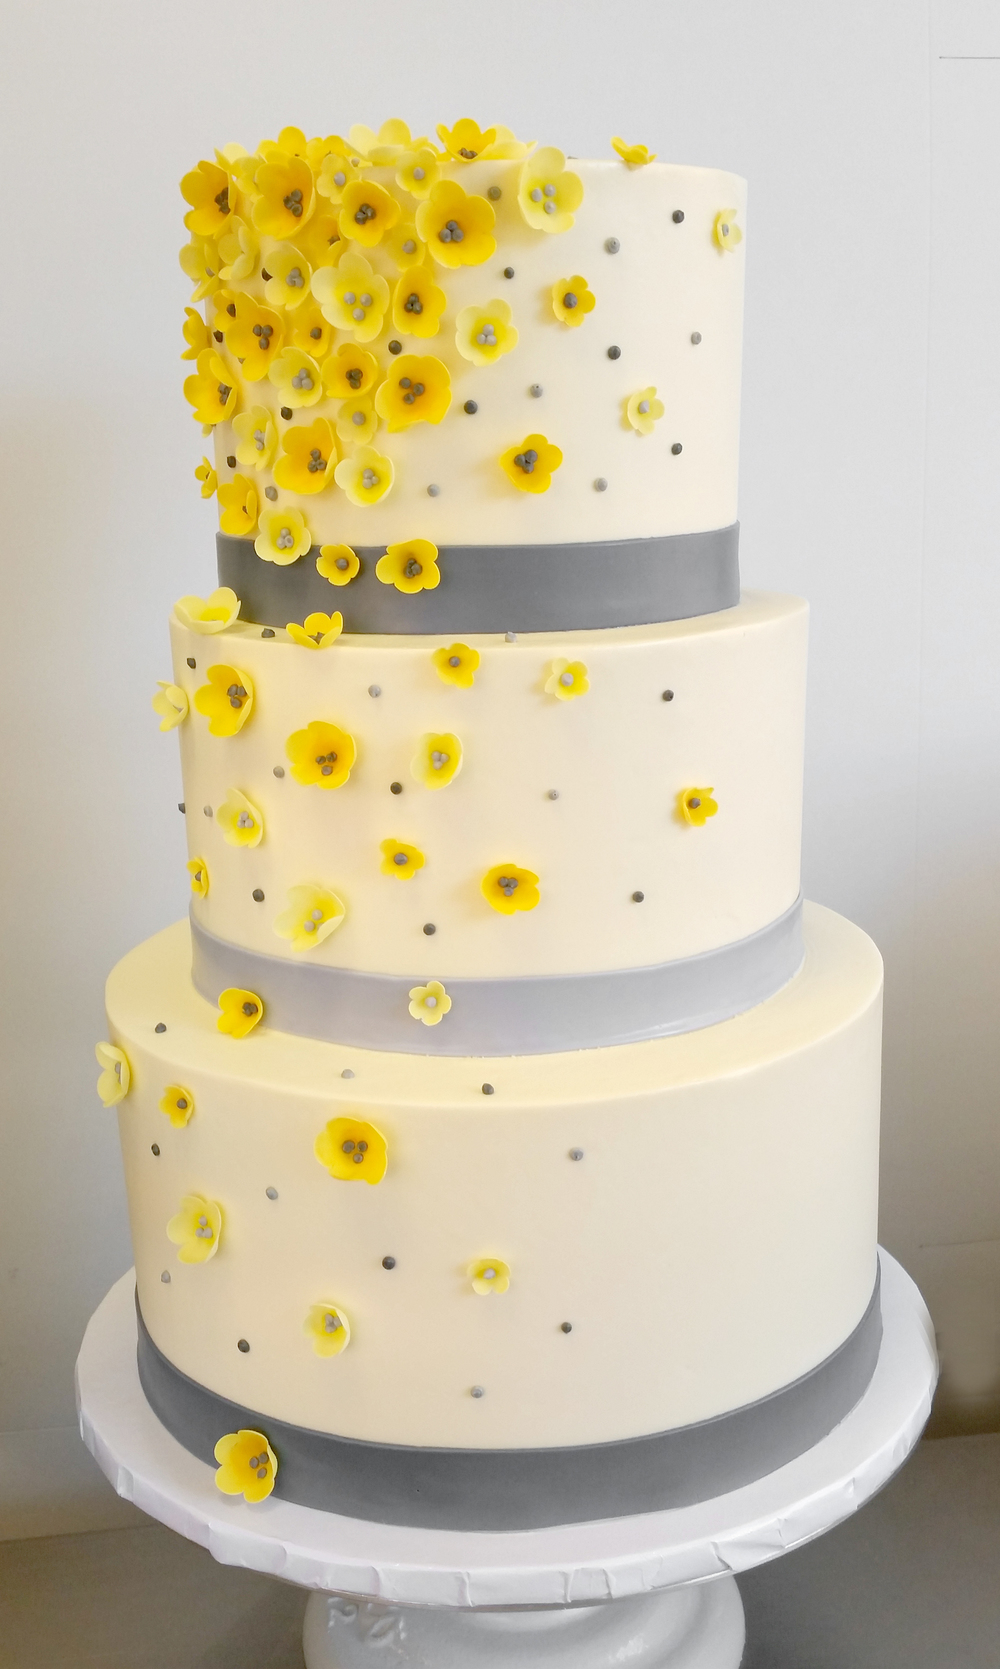 Yellow blossoms gray bands cake.jpg